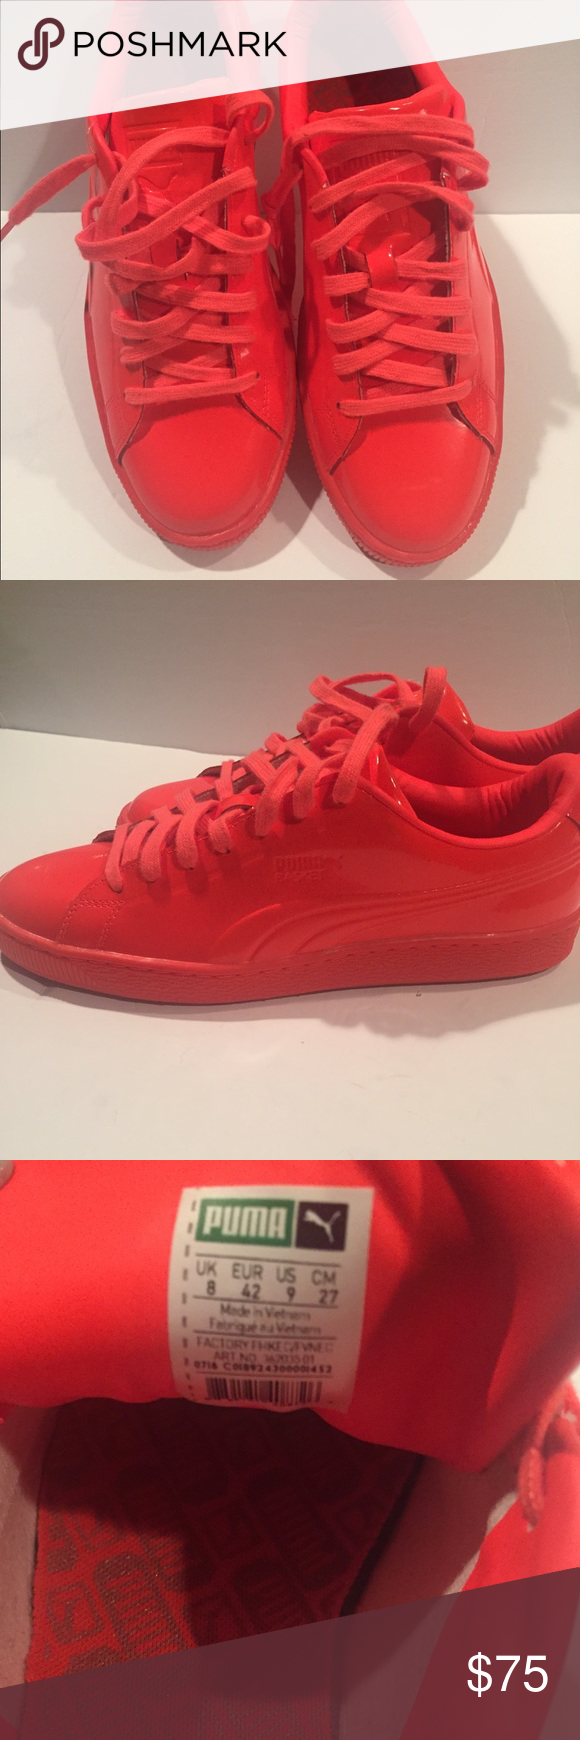 sneakers for cheap 662c0 dbafa ... discount puma clyde sneakers these puma sneakers are hot the color is  bright neon orange patent